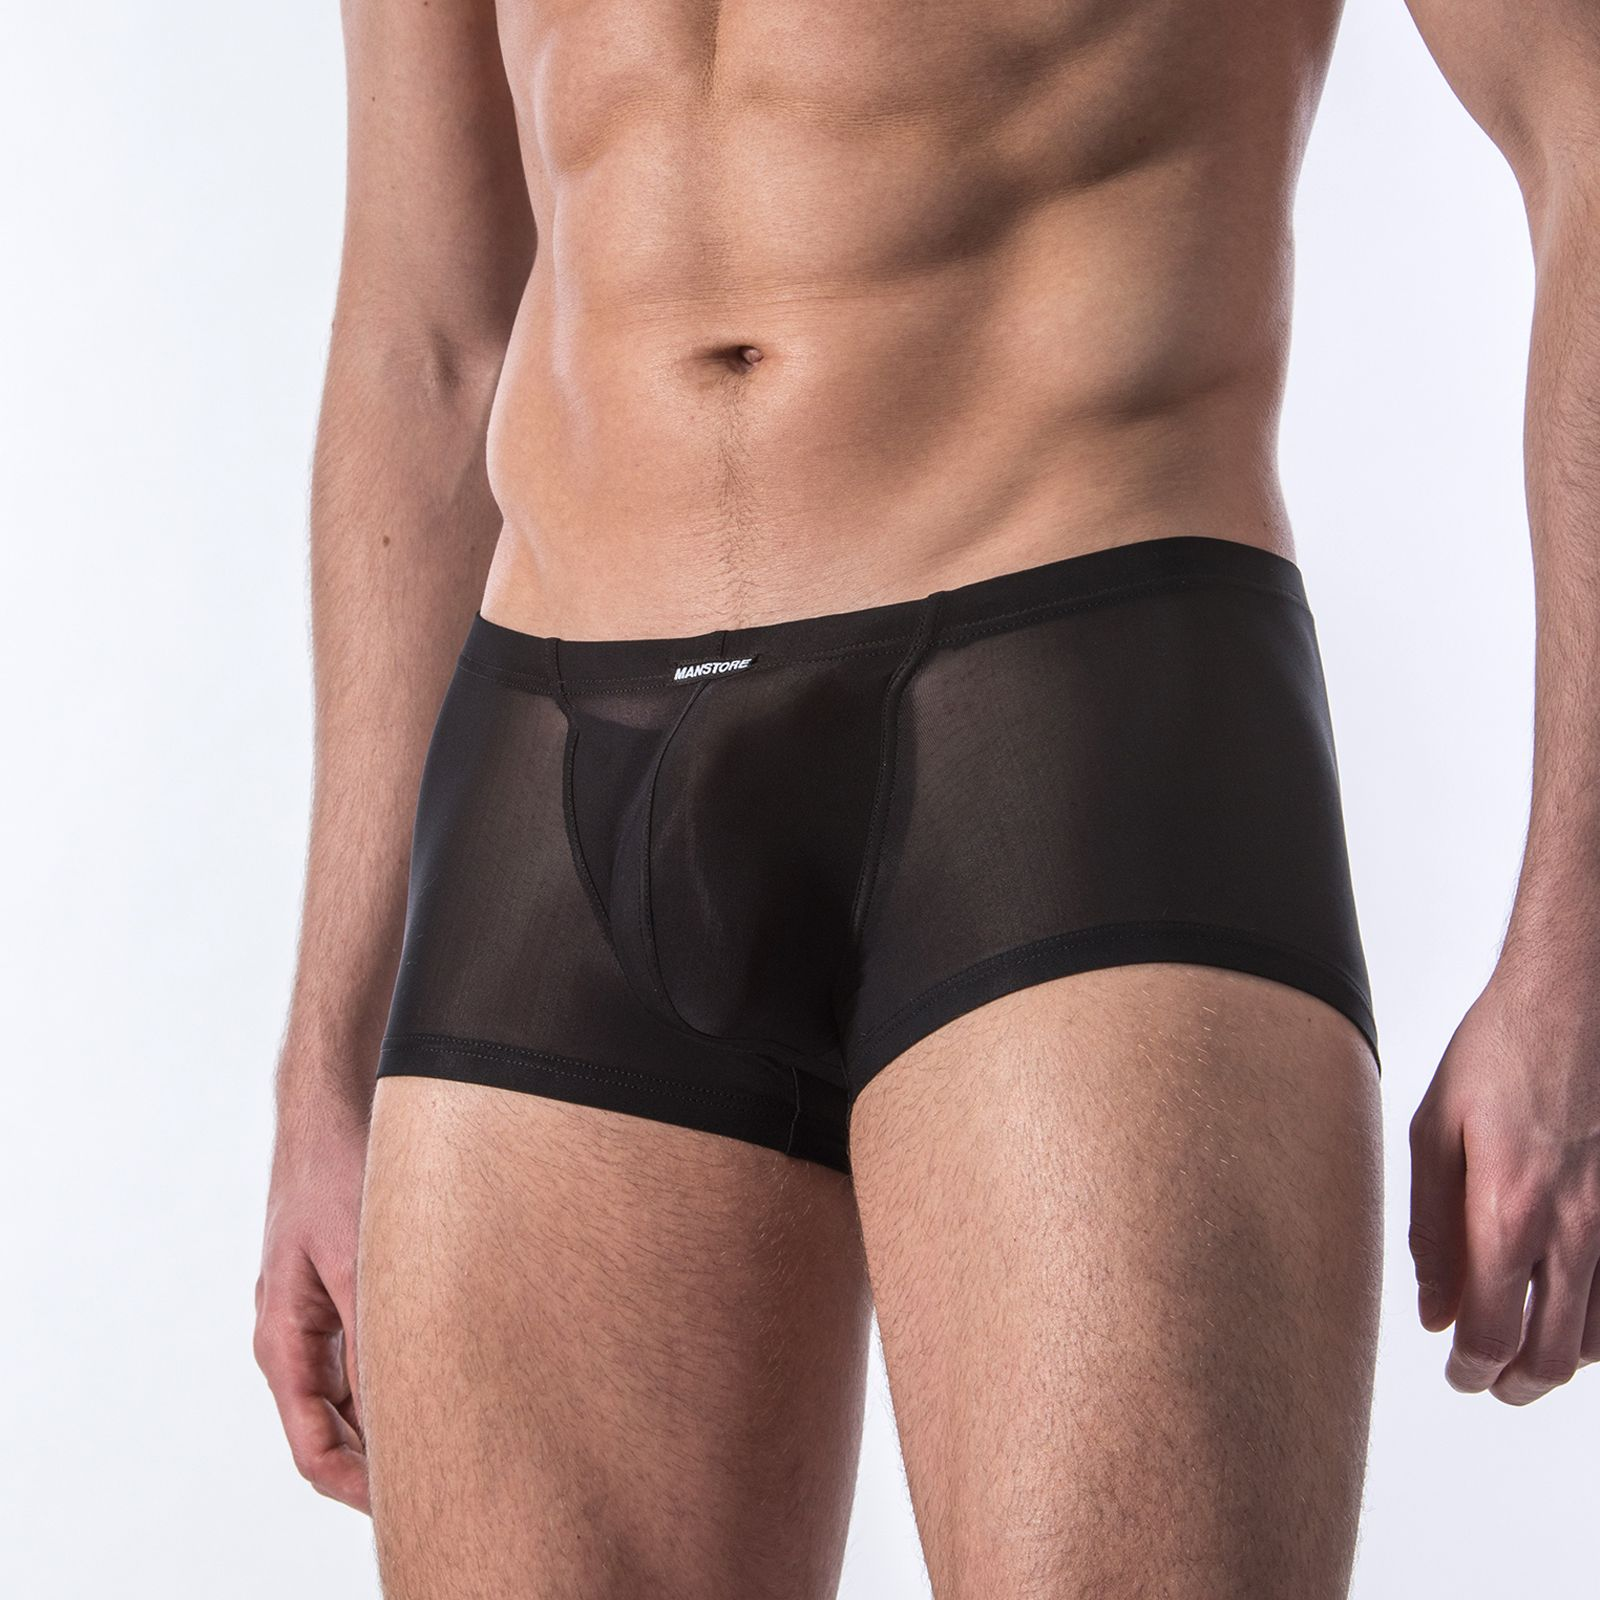 M101 Push Up Boxer Manstore 206168